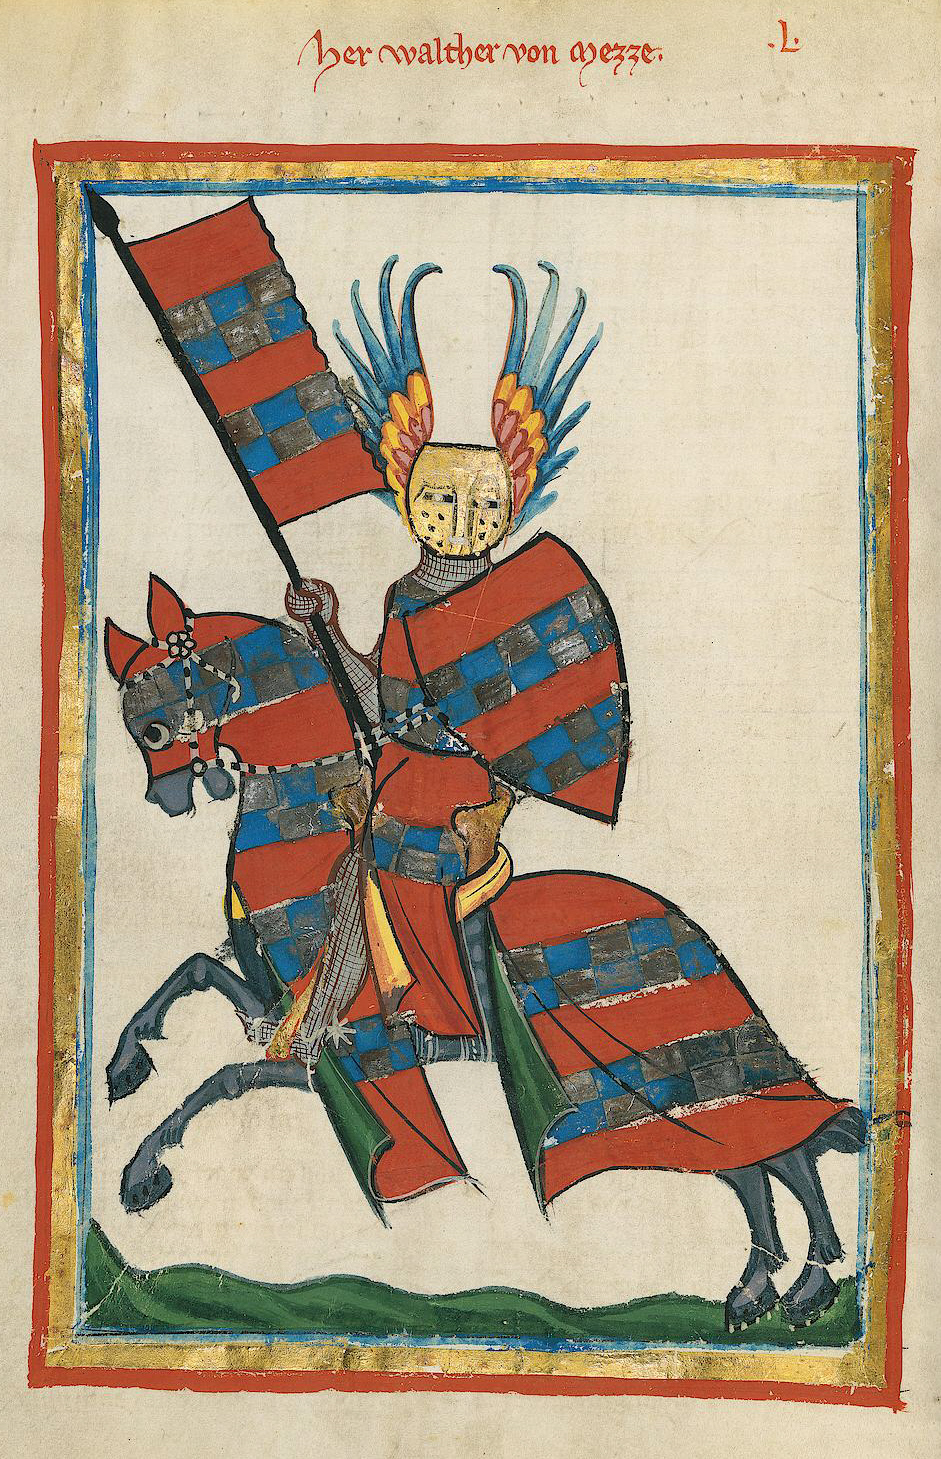 Illustration of Codex Manesse, cr. 1304 or cr. 1340, Zürich, Switzerland